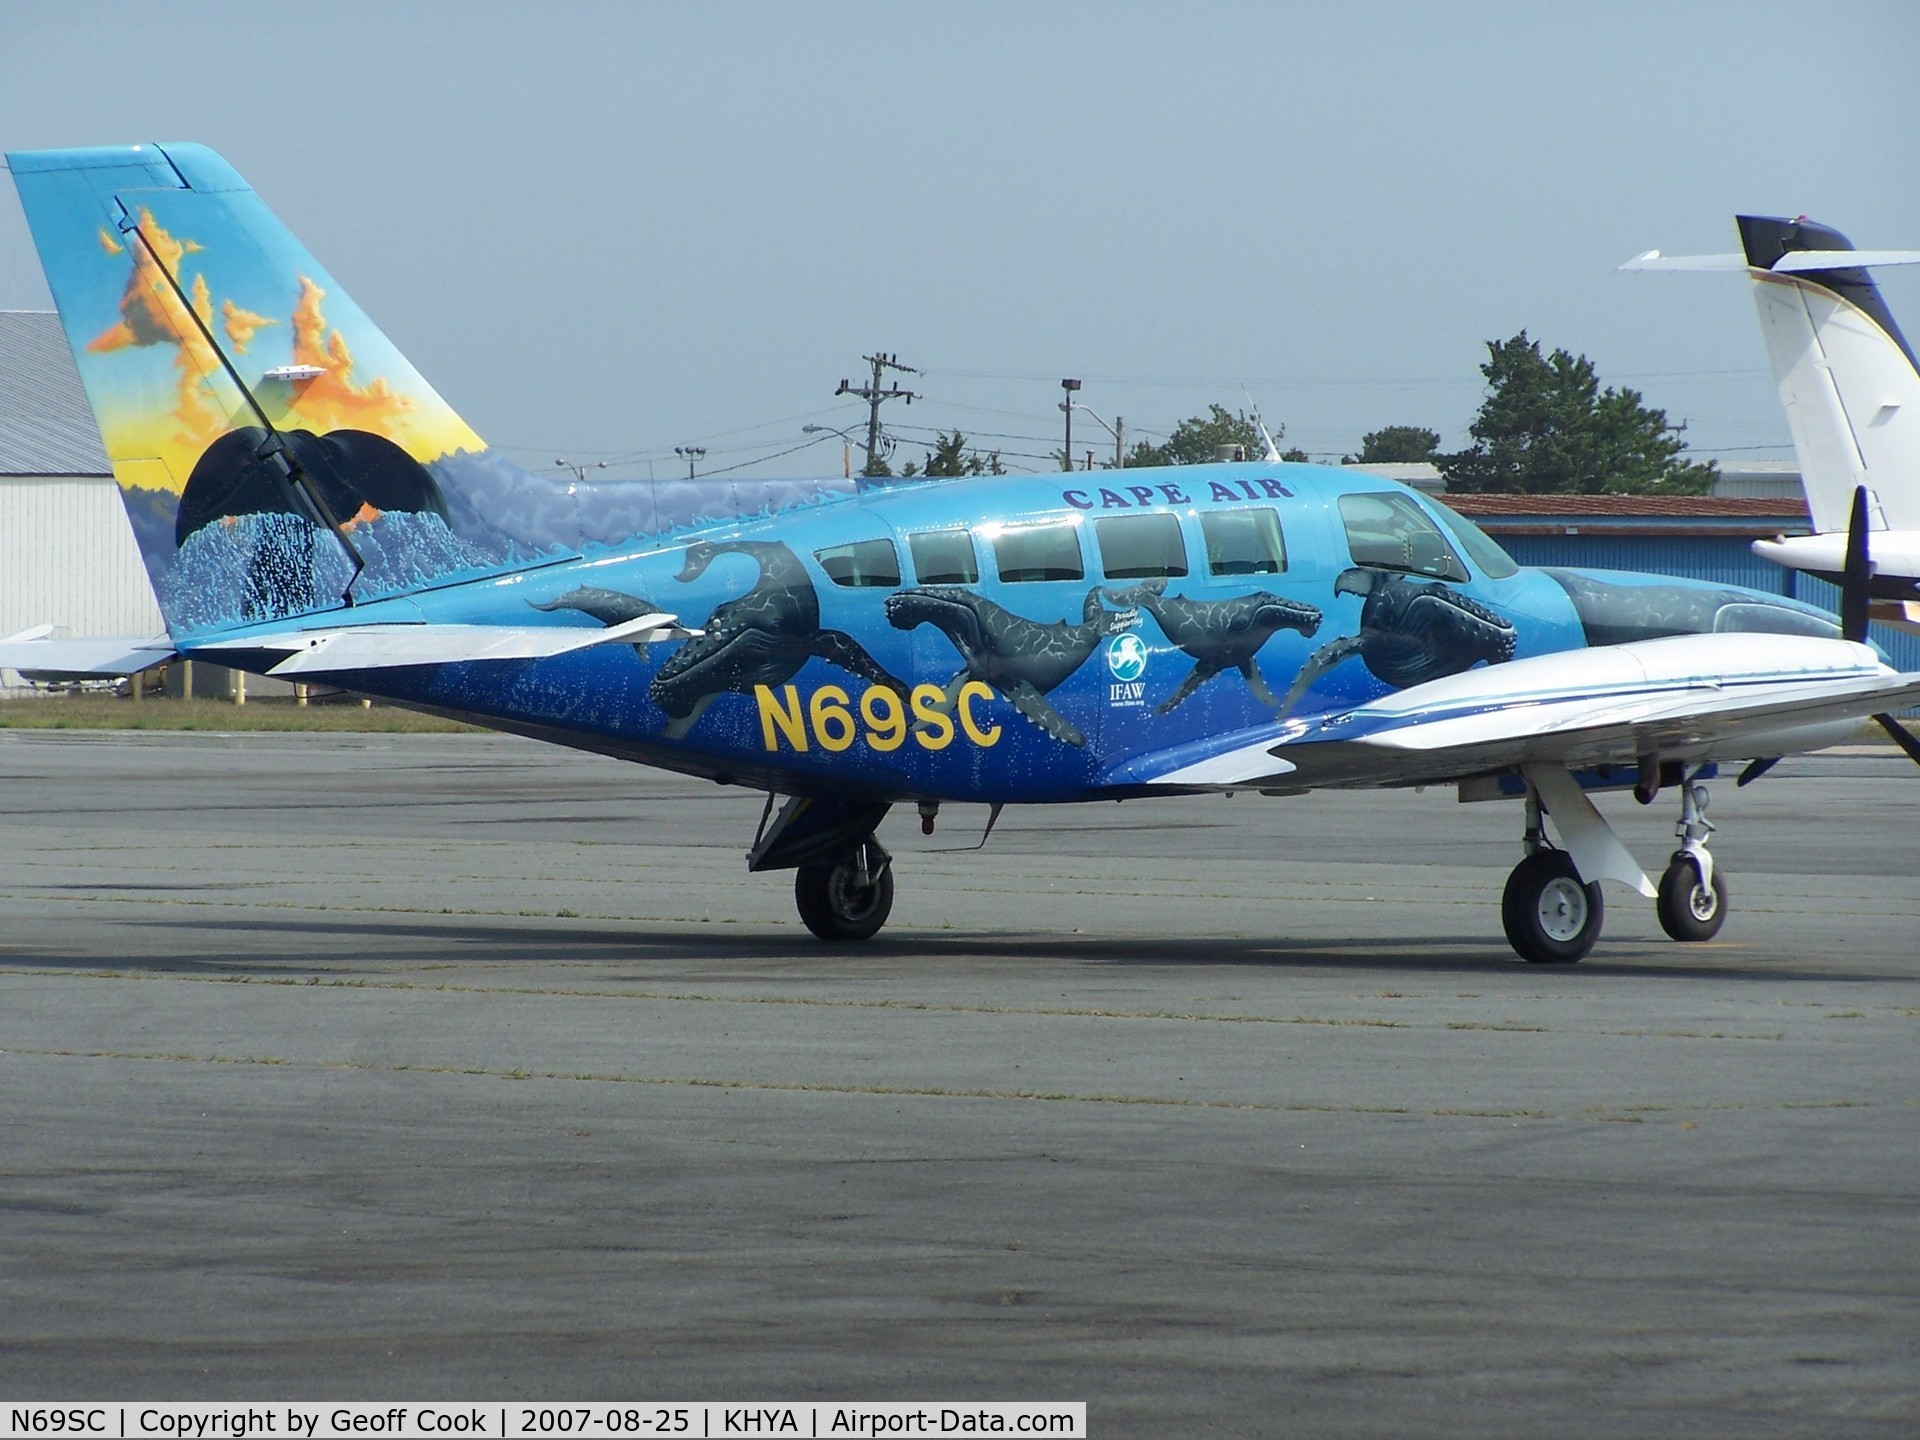 N69SC, 1979 Cessna 402C C/N 402C0041, N69SC Cape Air in a very colourful livery on the company's ramp